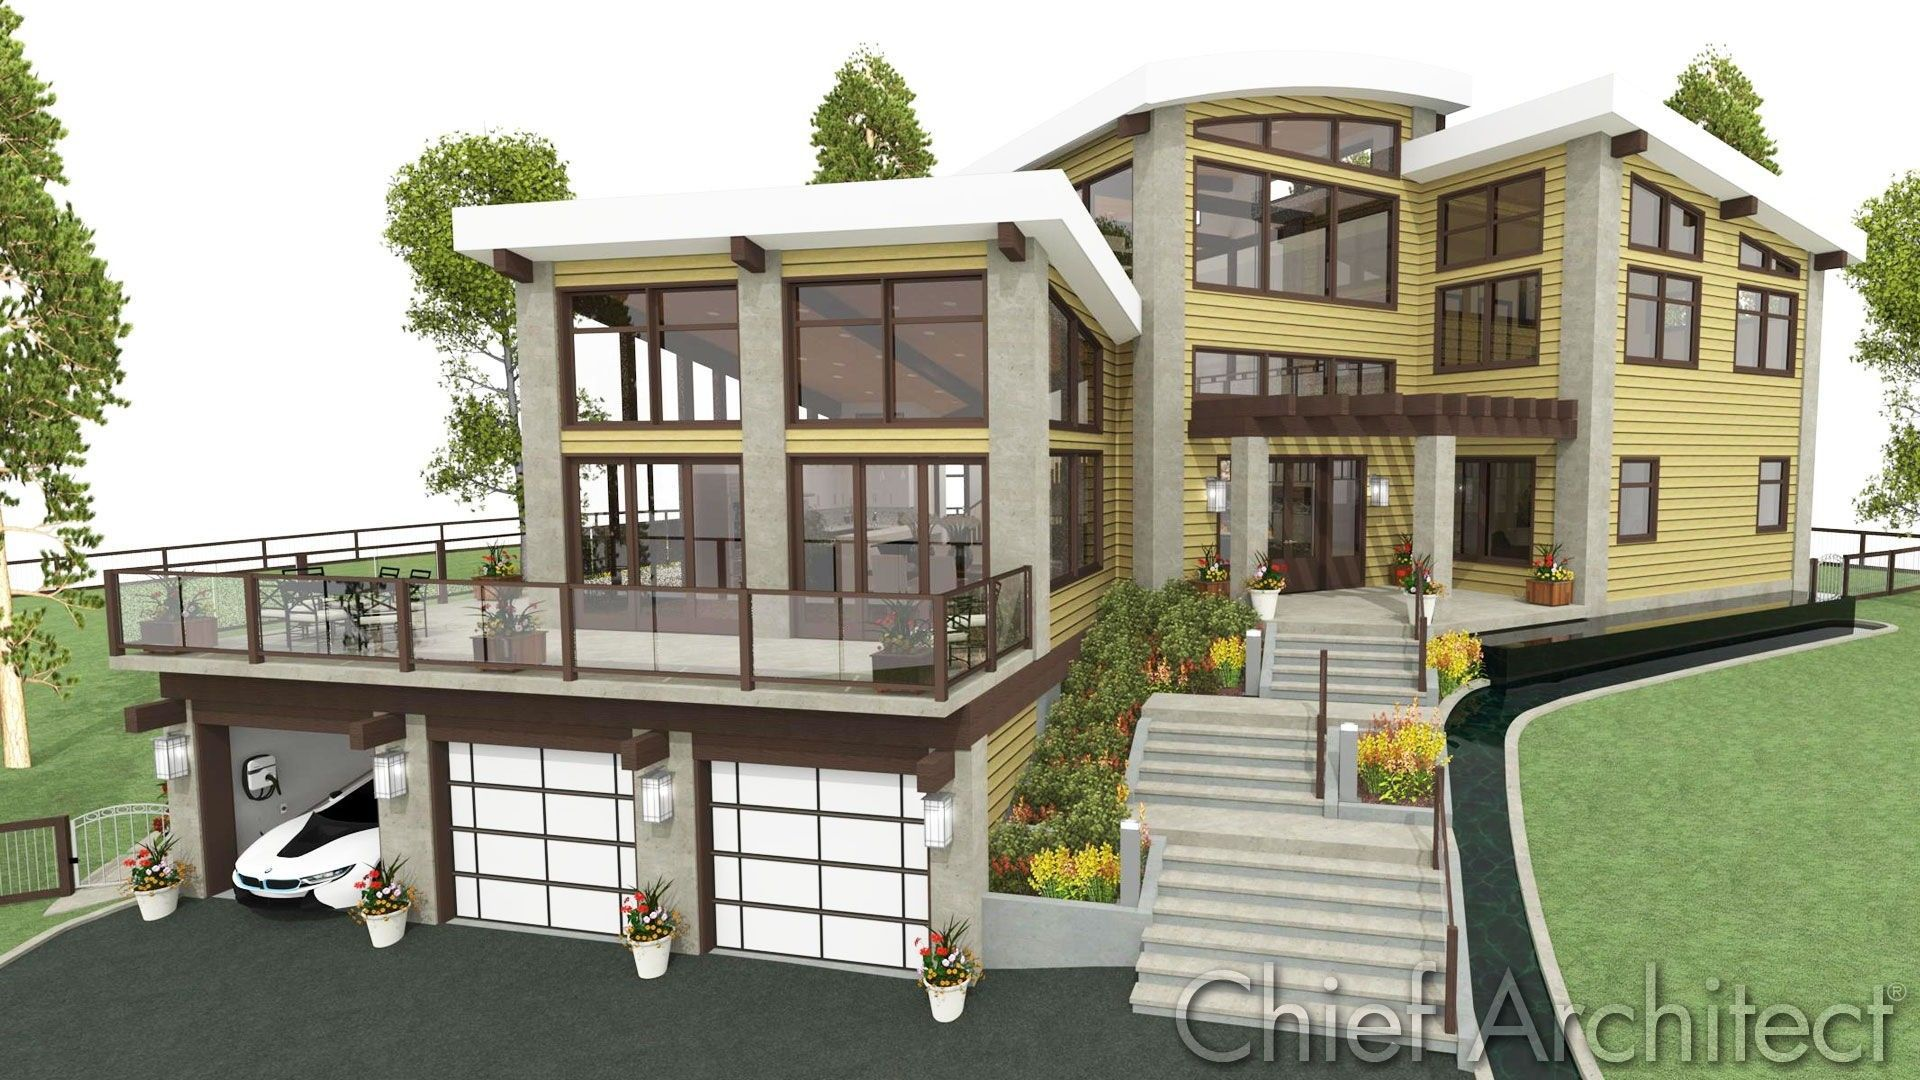 Steep Hillside House Plans House Architecture Design House Front Design Architecture House